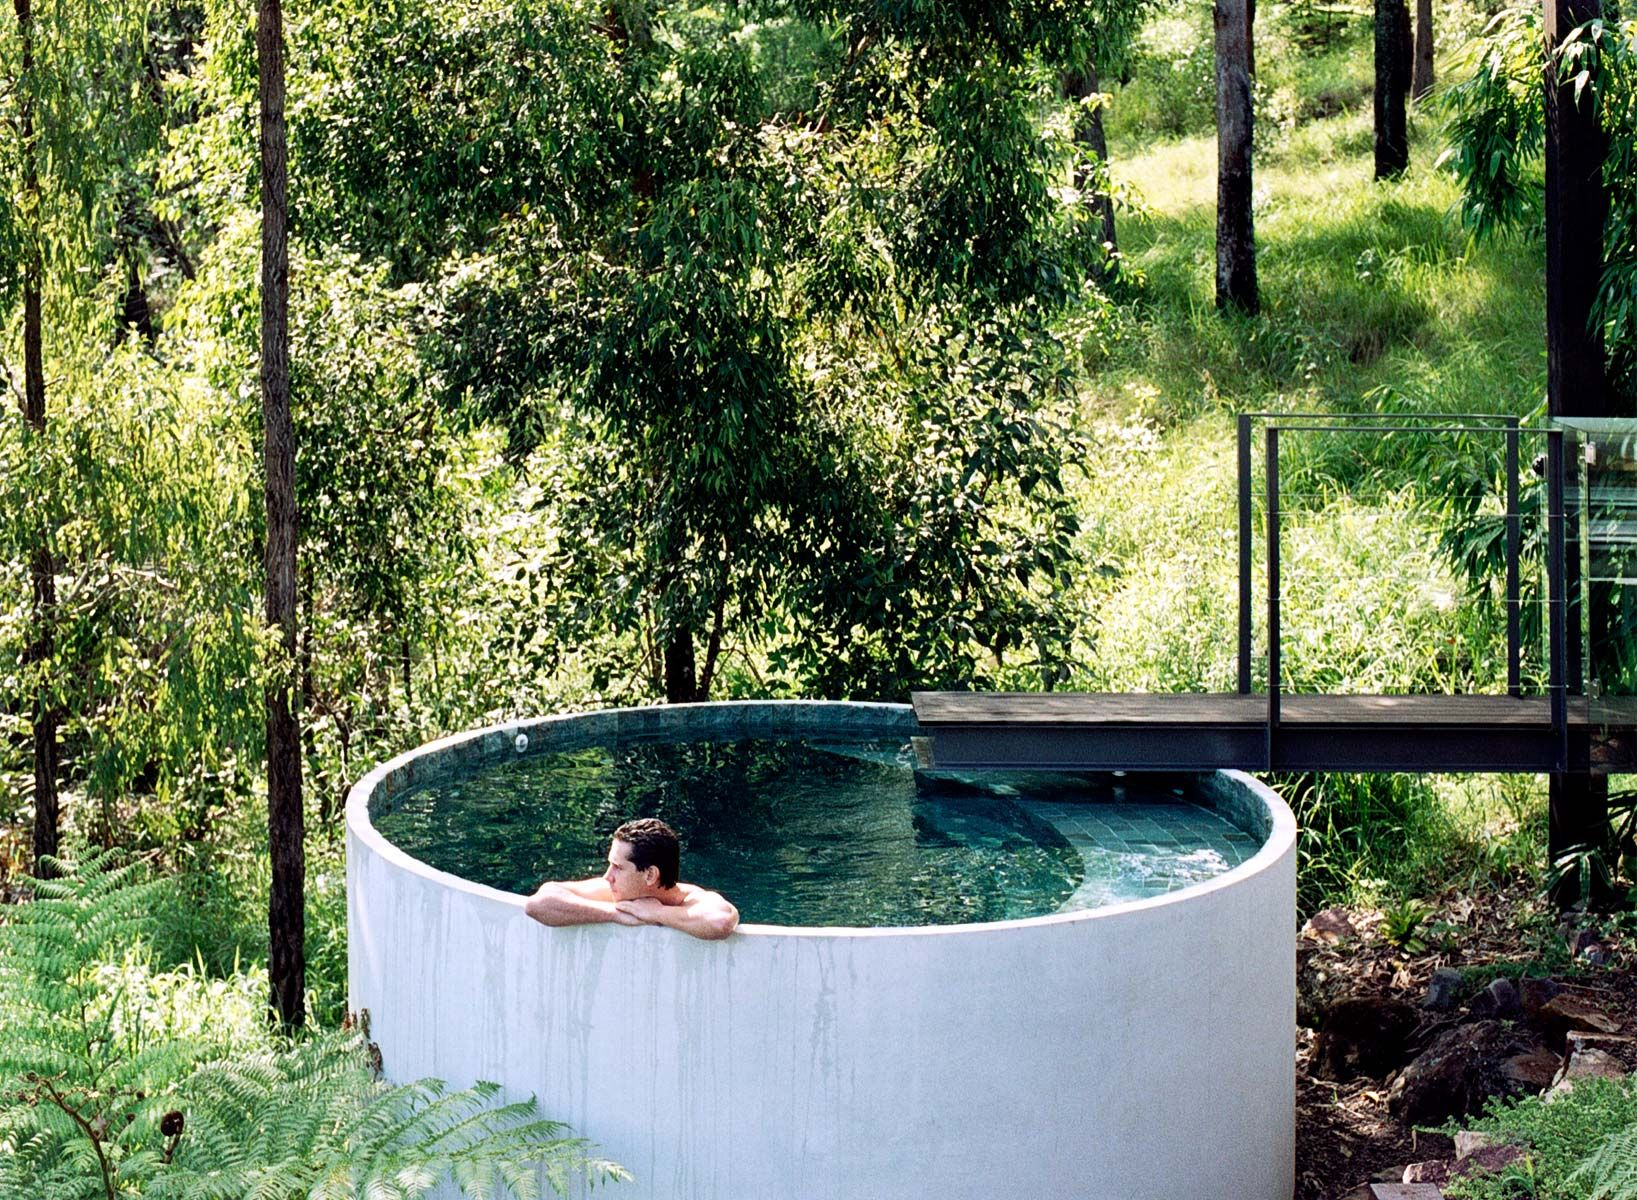 concrete pipe as pool how cool is that imagine a series of 3 or even 5 of them at different. Black Bedroom Furniture Sets. Home Design Ideas